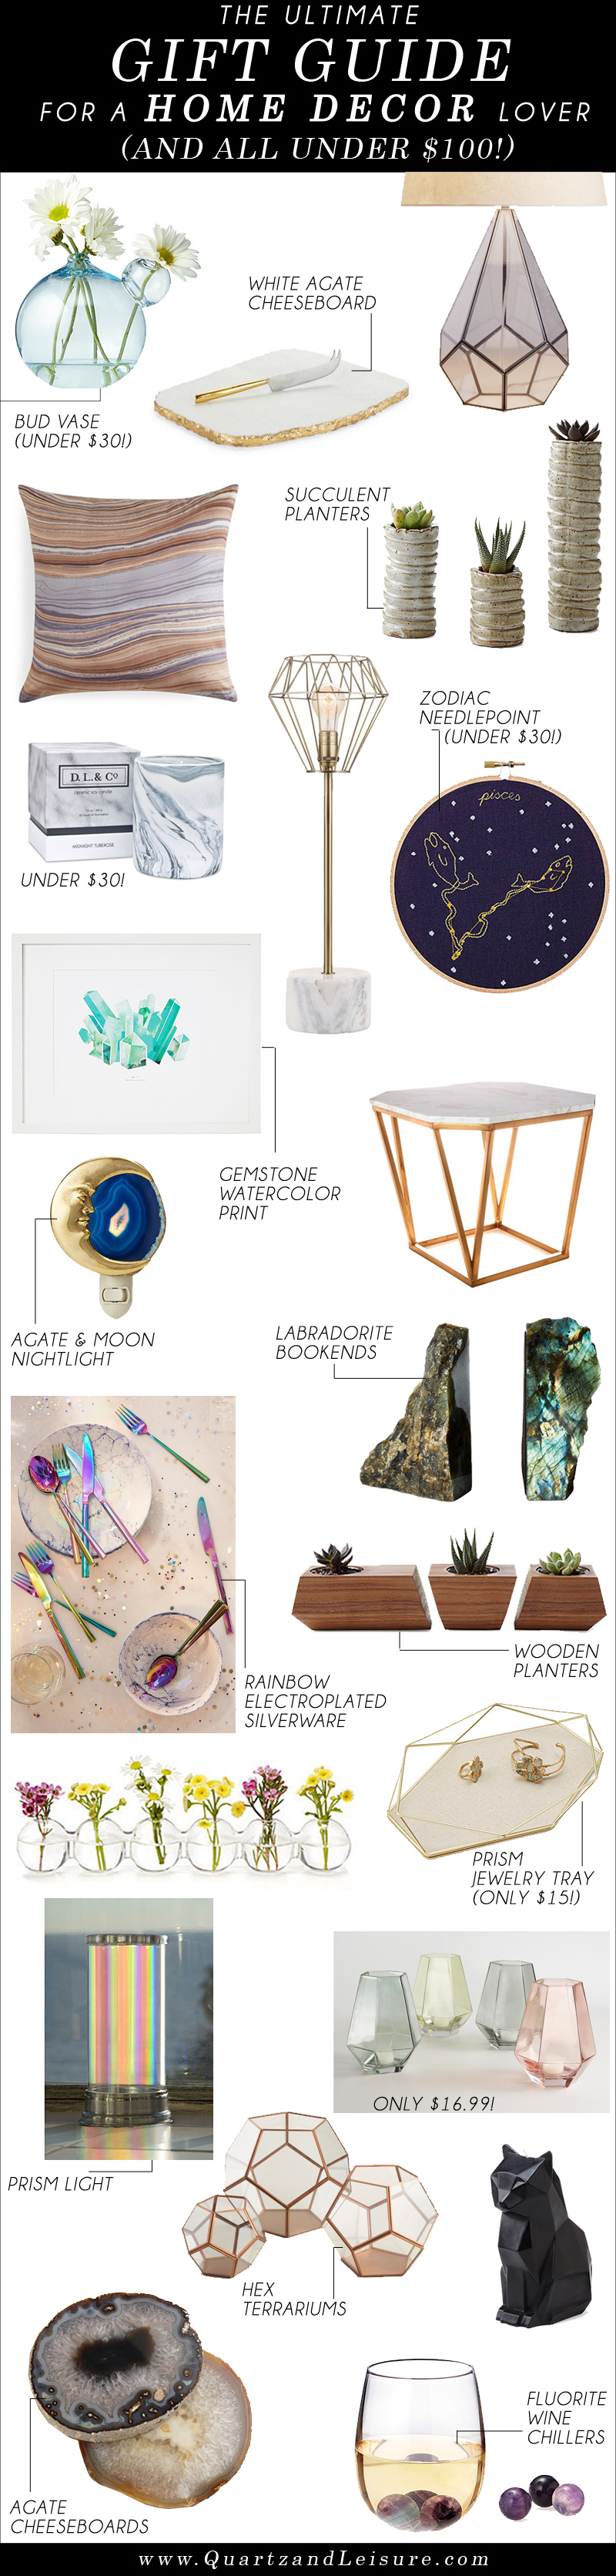 Home Decor Gift Guide -Quartz & Leisure